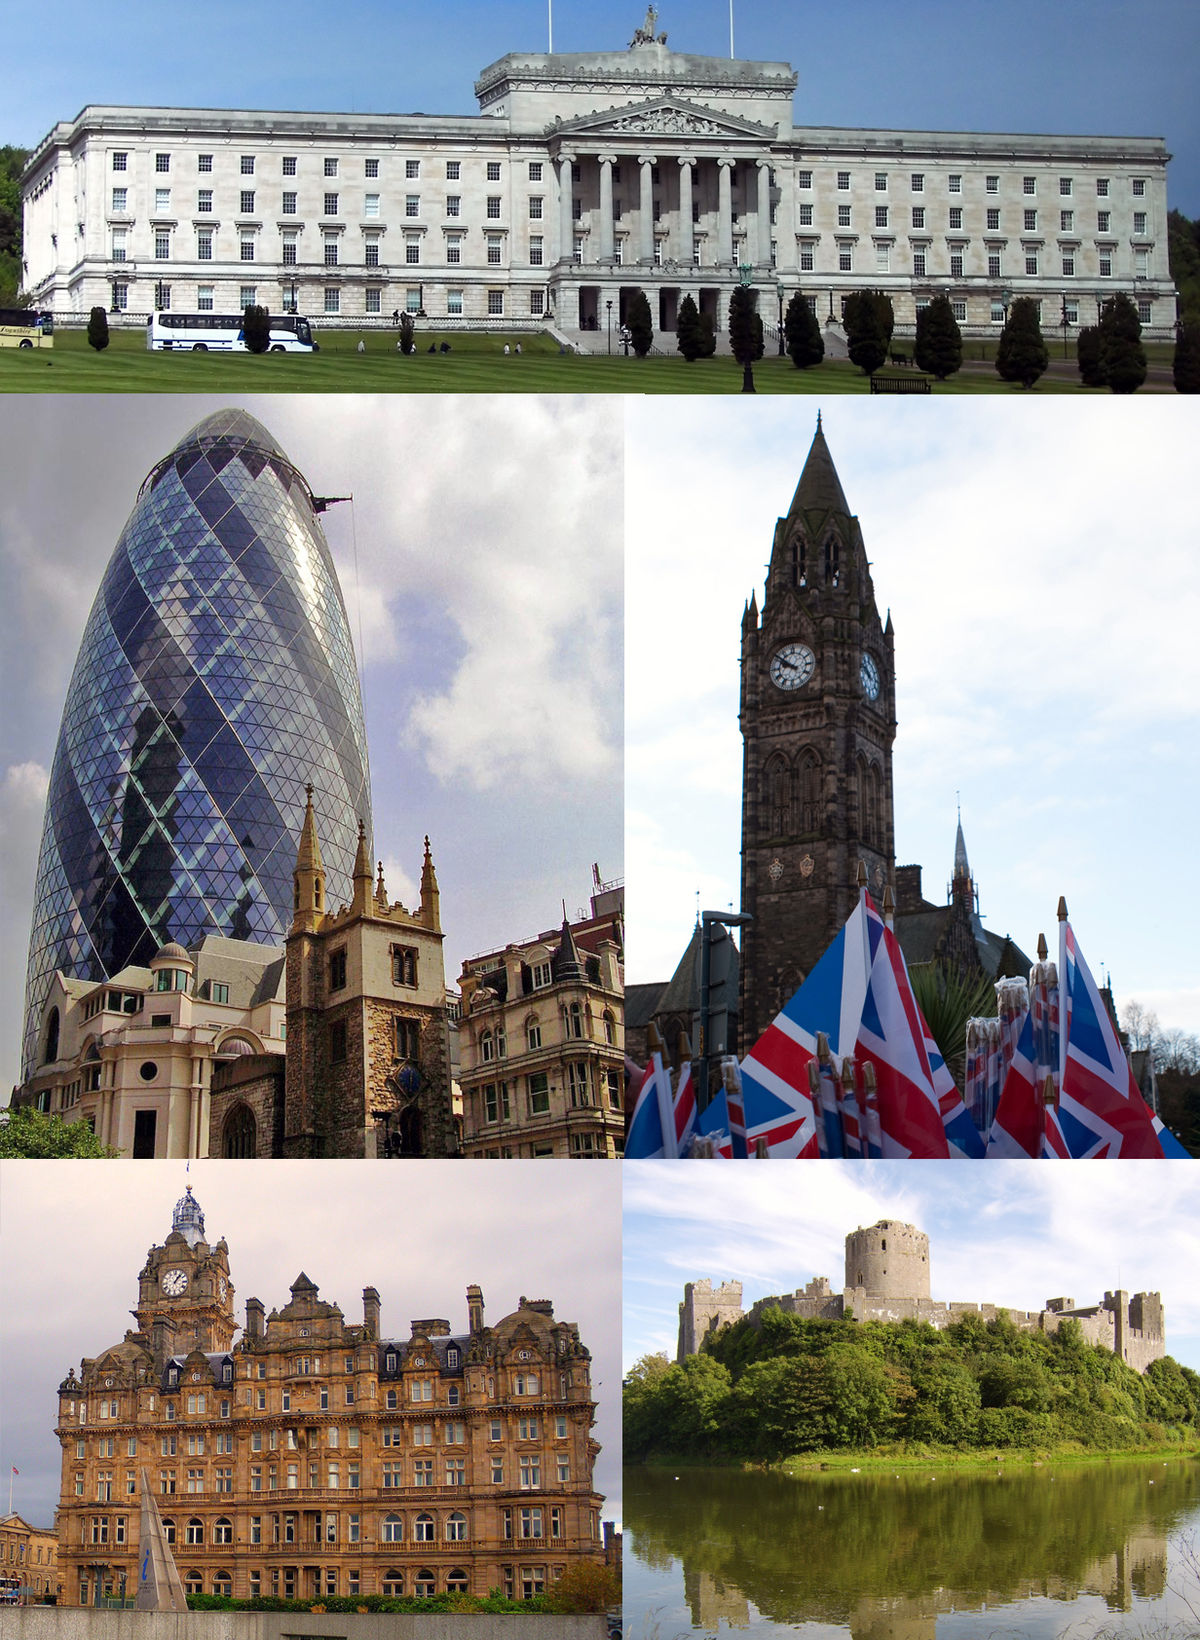 Architecture of the united kingdom wikipedia for Popular architectural styles